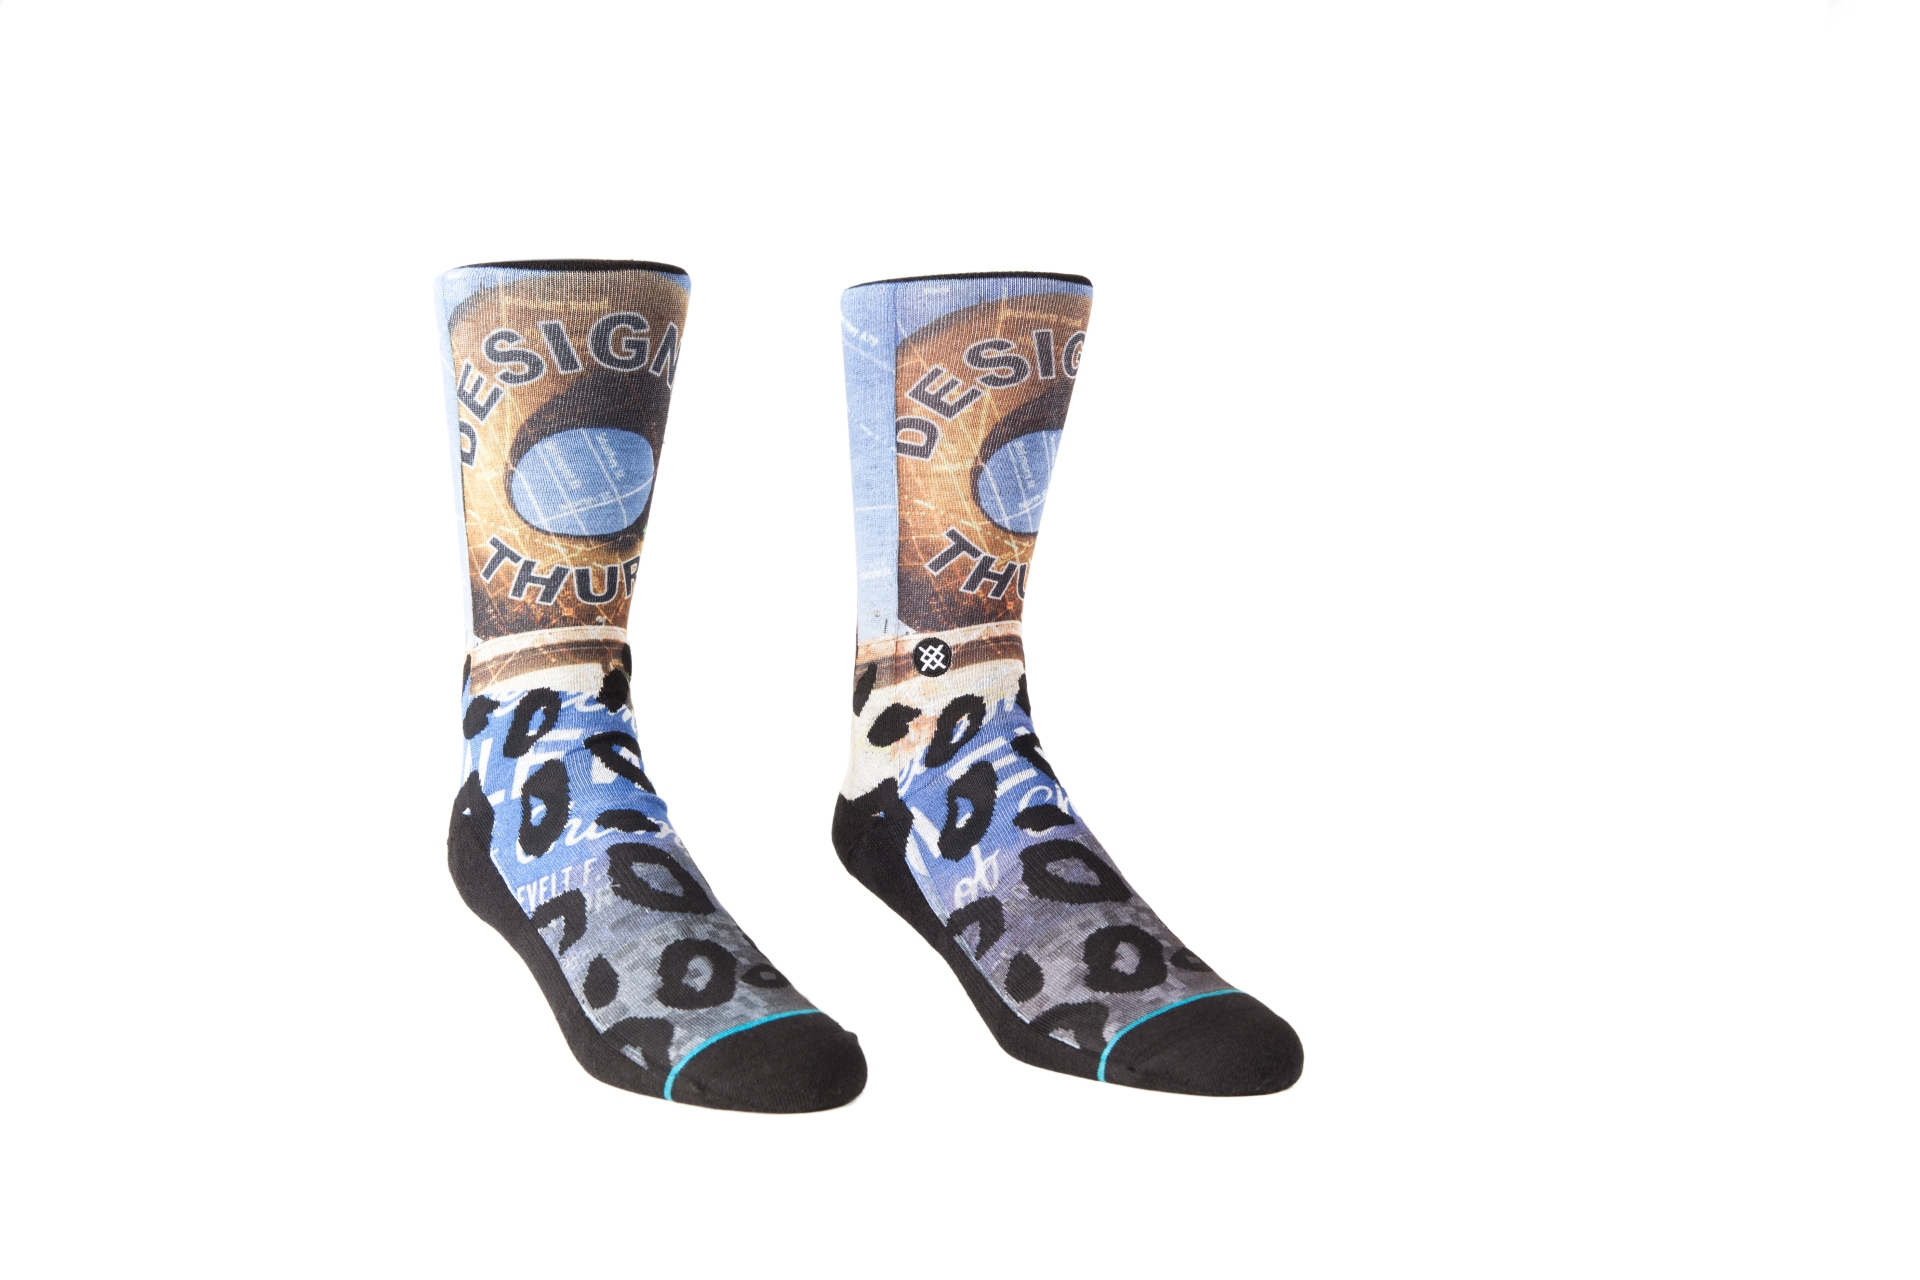 Stance Socks and Thurz Link Up on a Collabo